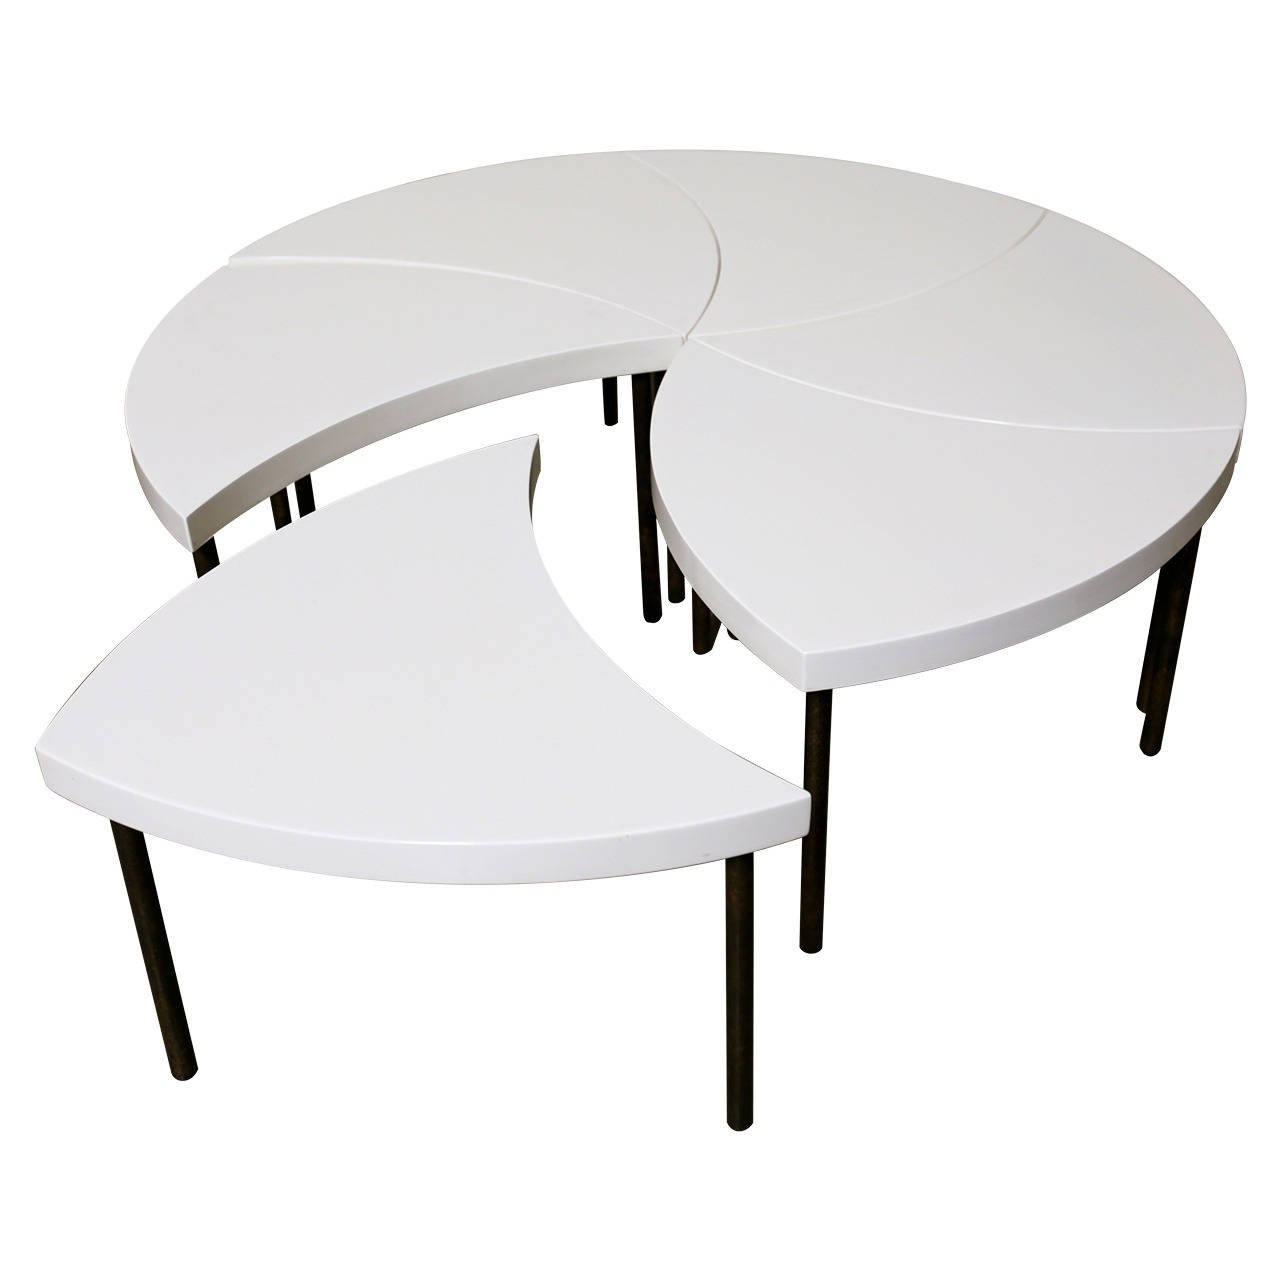 Modular Coffee Tables Amazing | Smakawy intended for Modular Coffee Tables (Image 18 of 30)